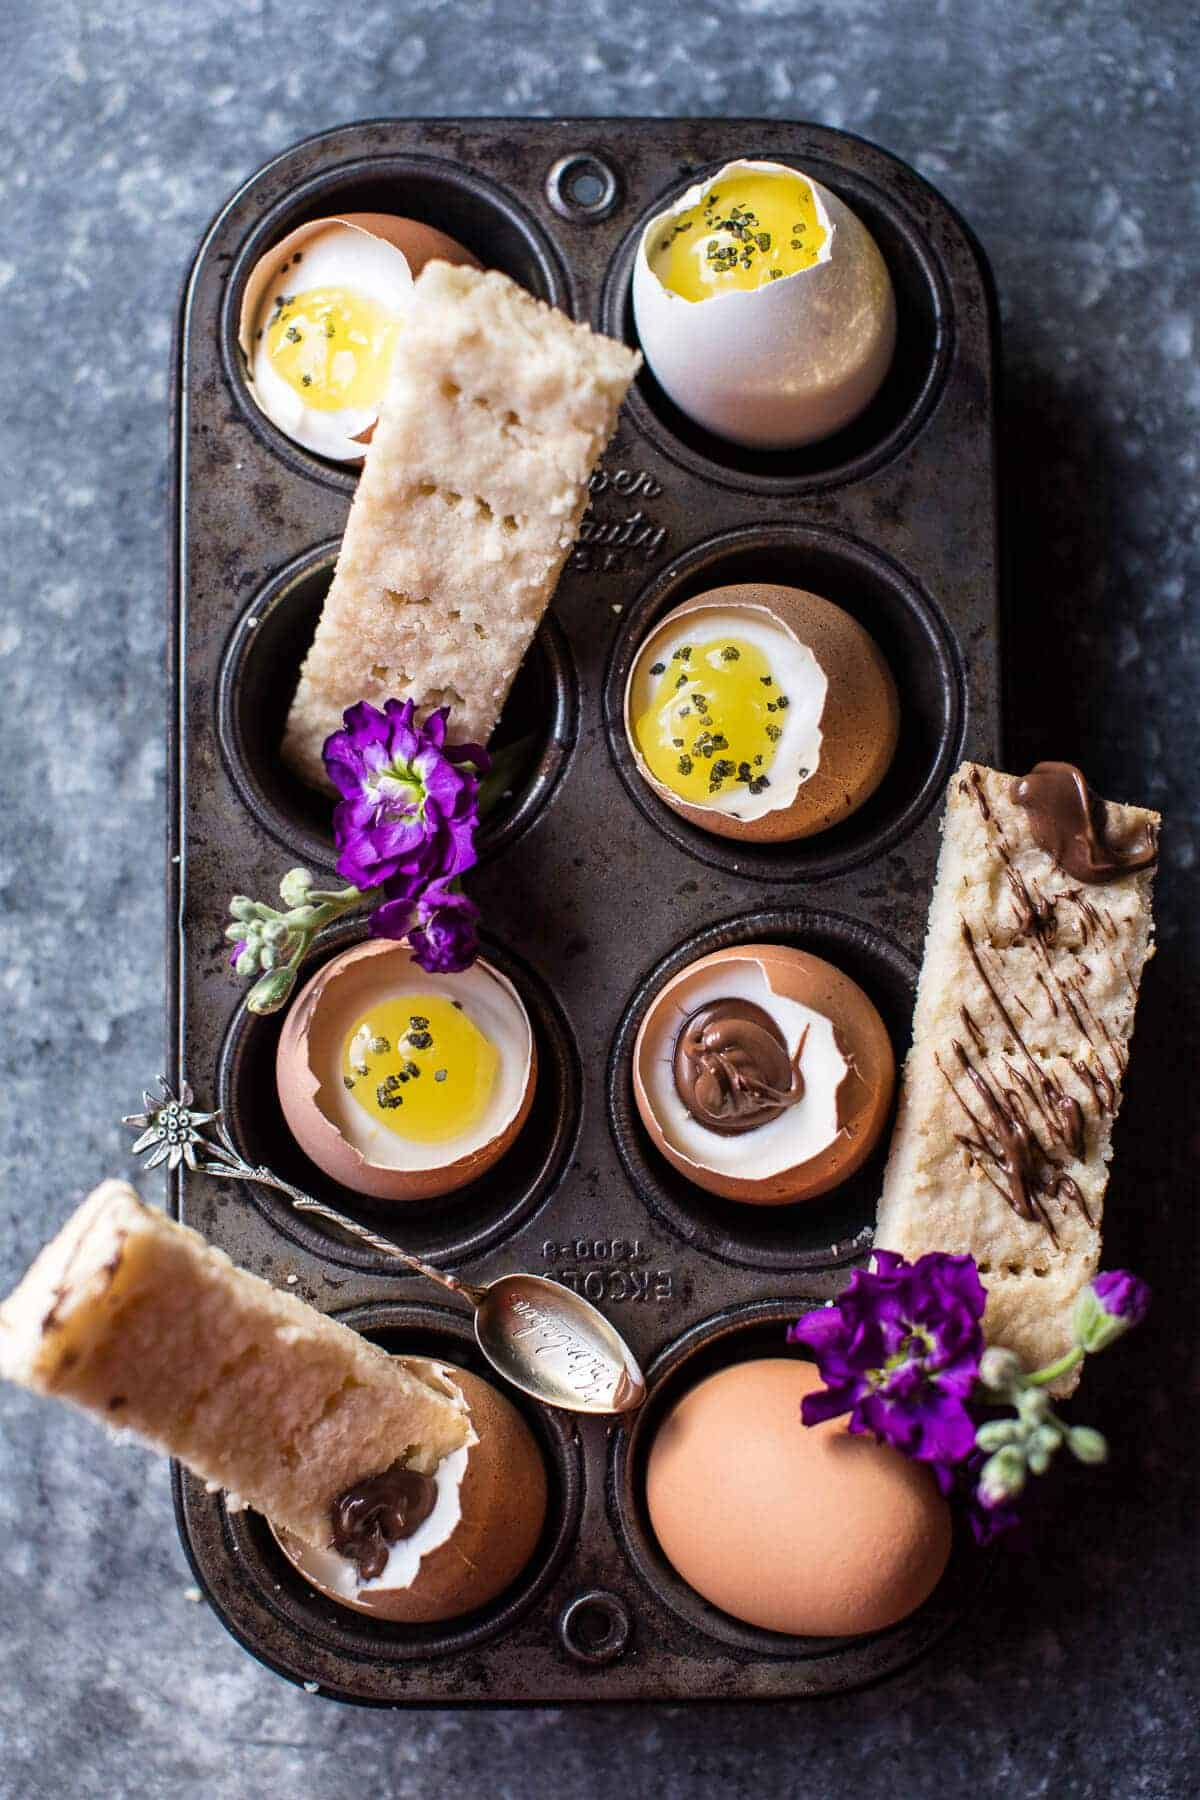 Cheesecake Eggs with Shortbread Soldiers | halfbakedharvest.com @hbharvest